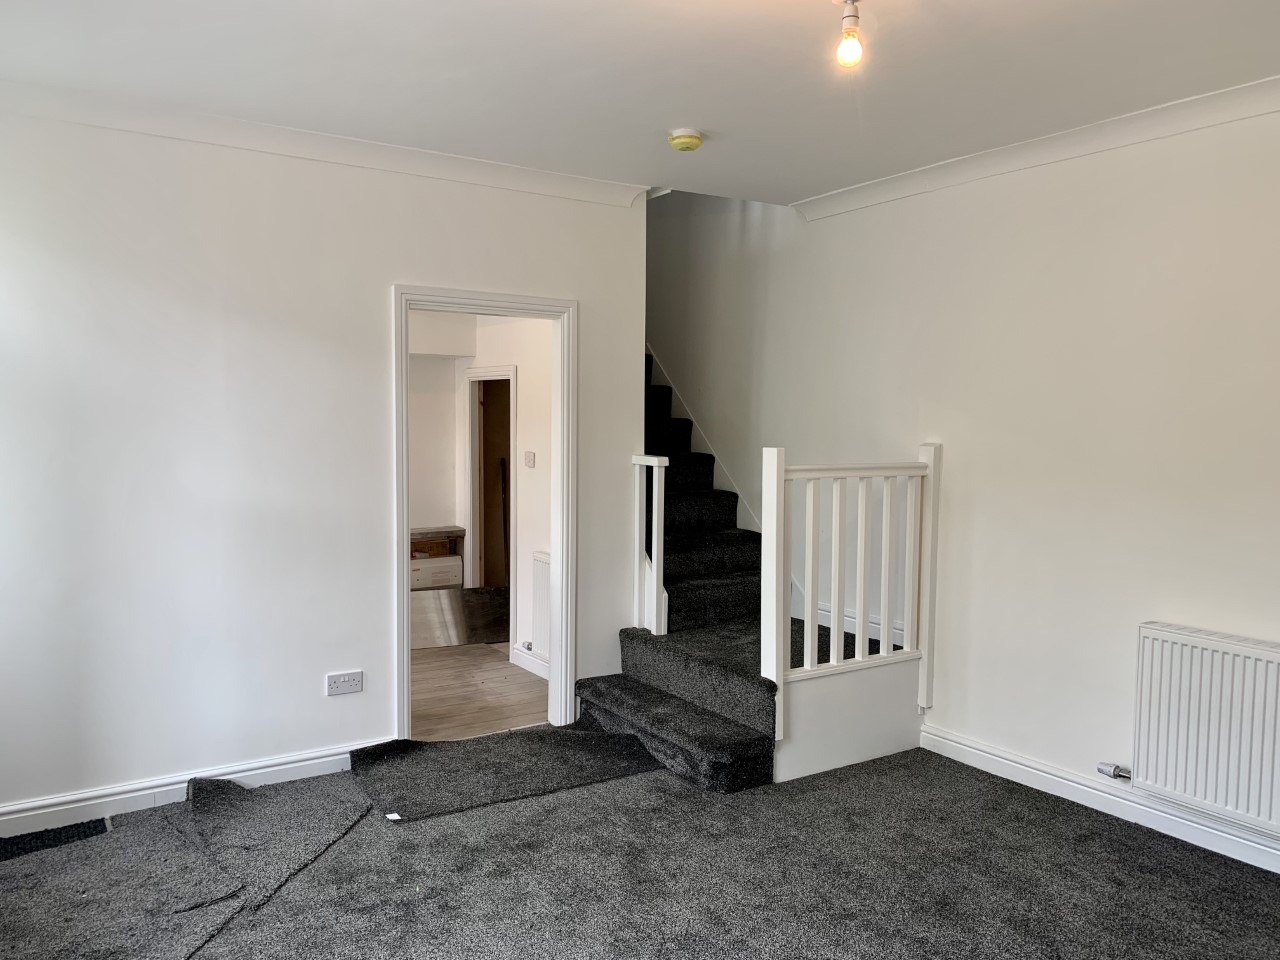 3 bedroom mid terraced house For Sale in Calderdale - Photograph 4.